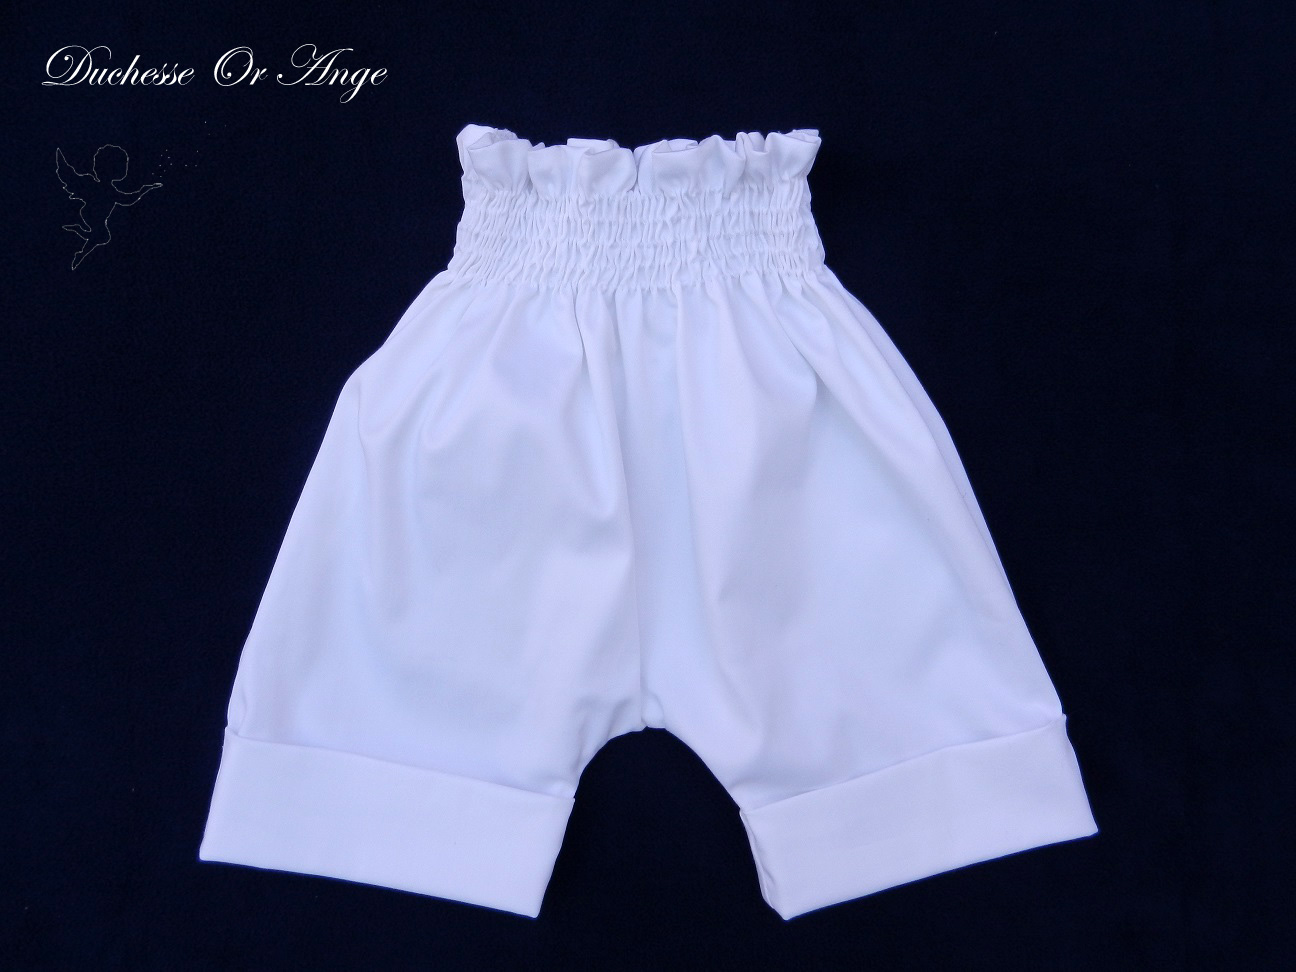 Doa 112 a pantalon court blanc 6 mois white short trousers 6 months old